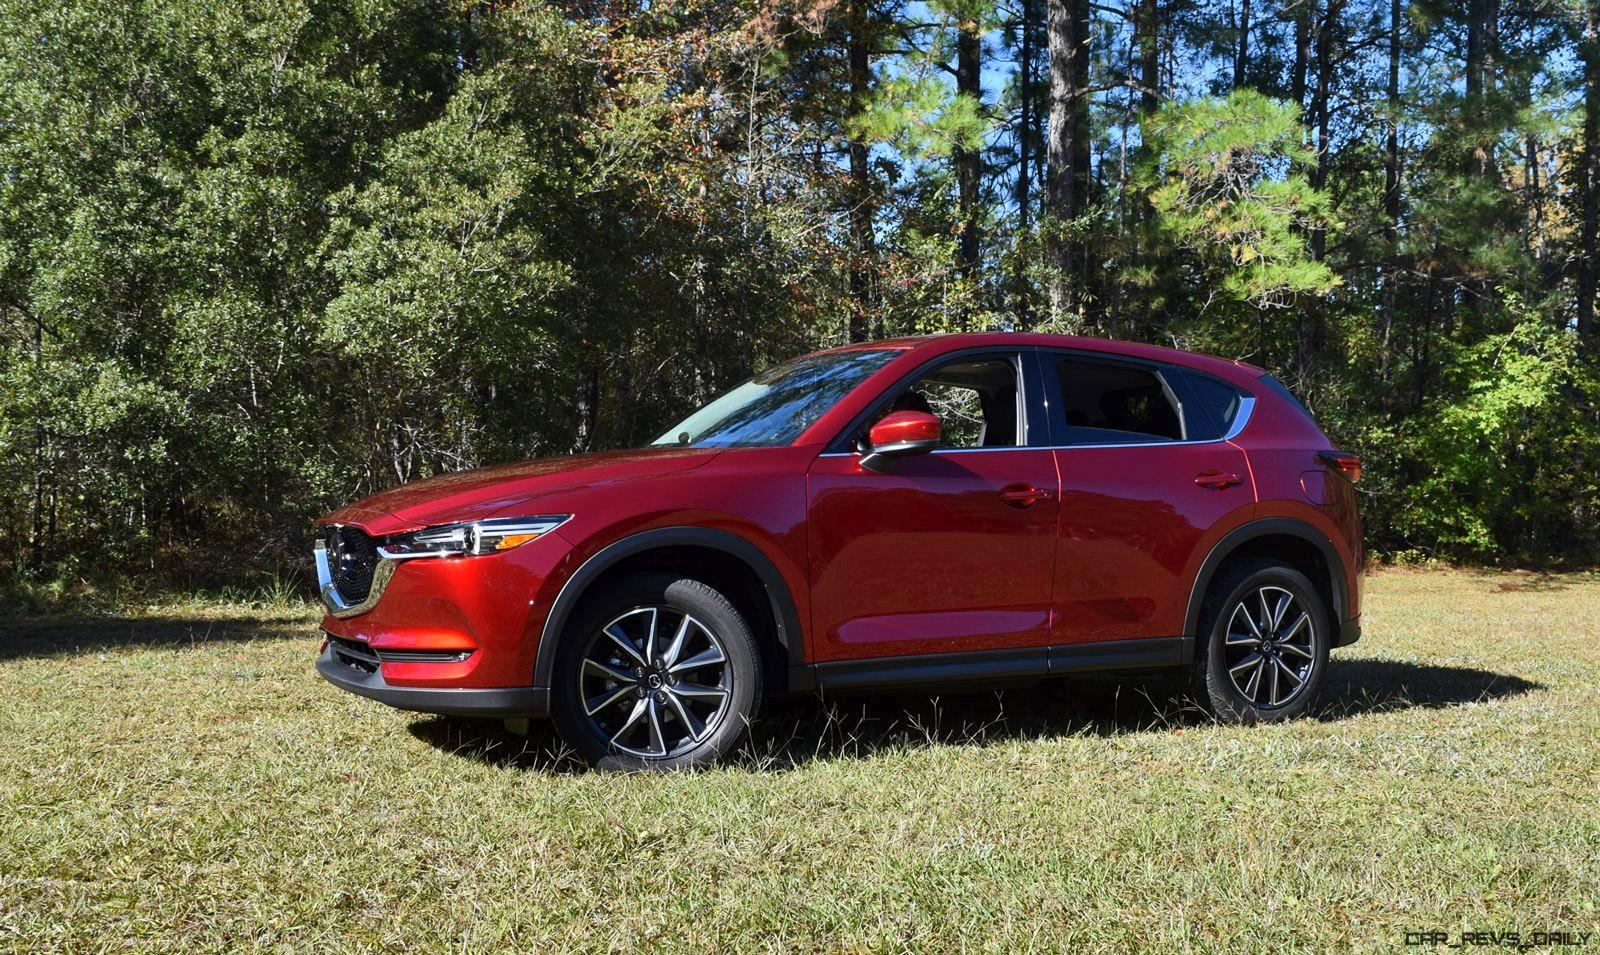 2017 mazda cx 5 gt premium awd hd road test review. Black Bedroom Furniture Sets. Home Design Ideas